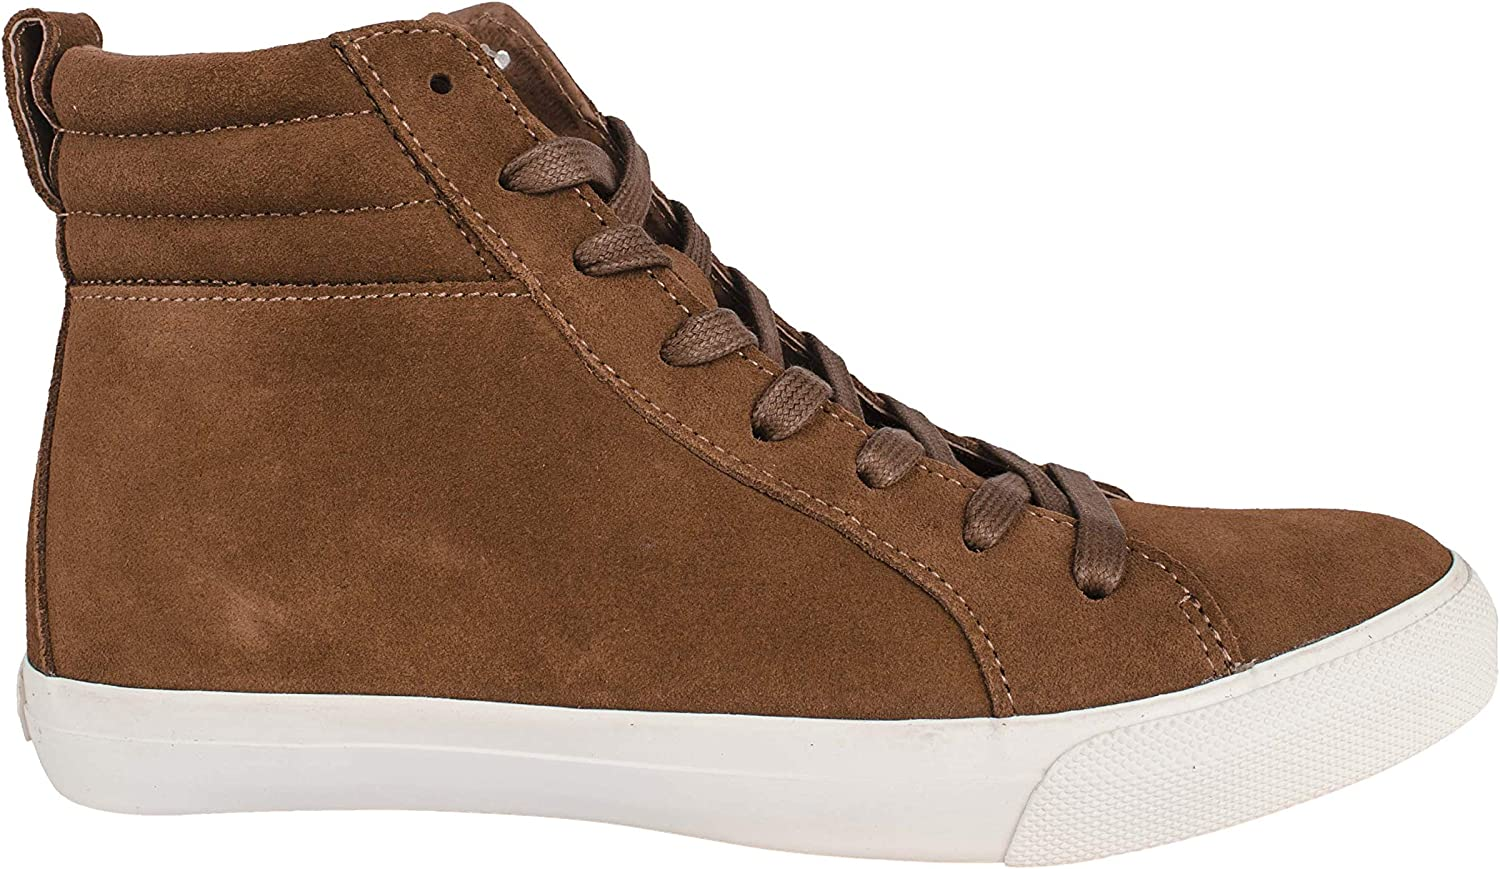 Polo Ralph Lauren Men's Gaven Suede High-Top Sneaker